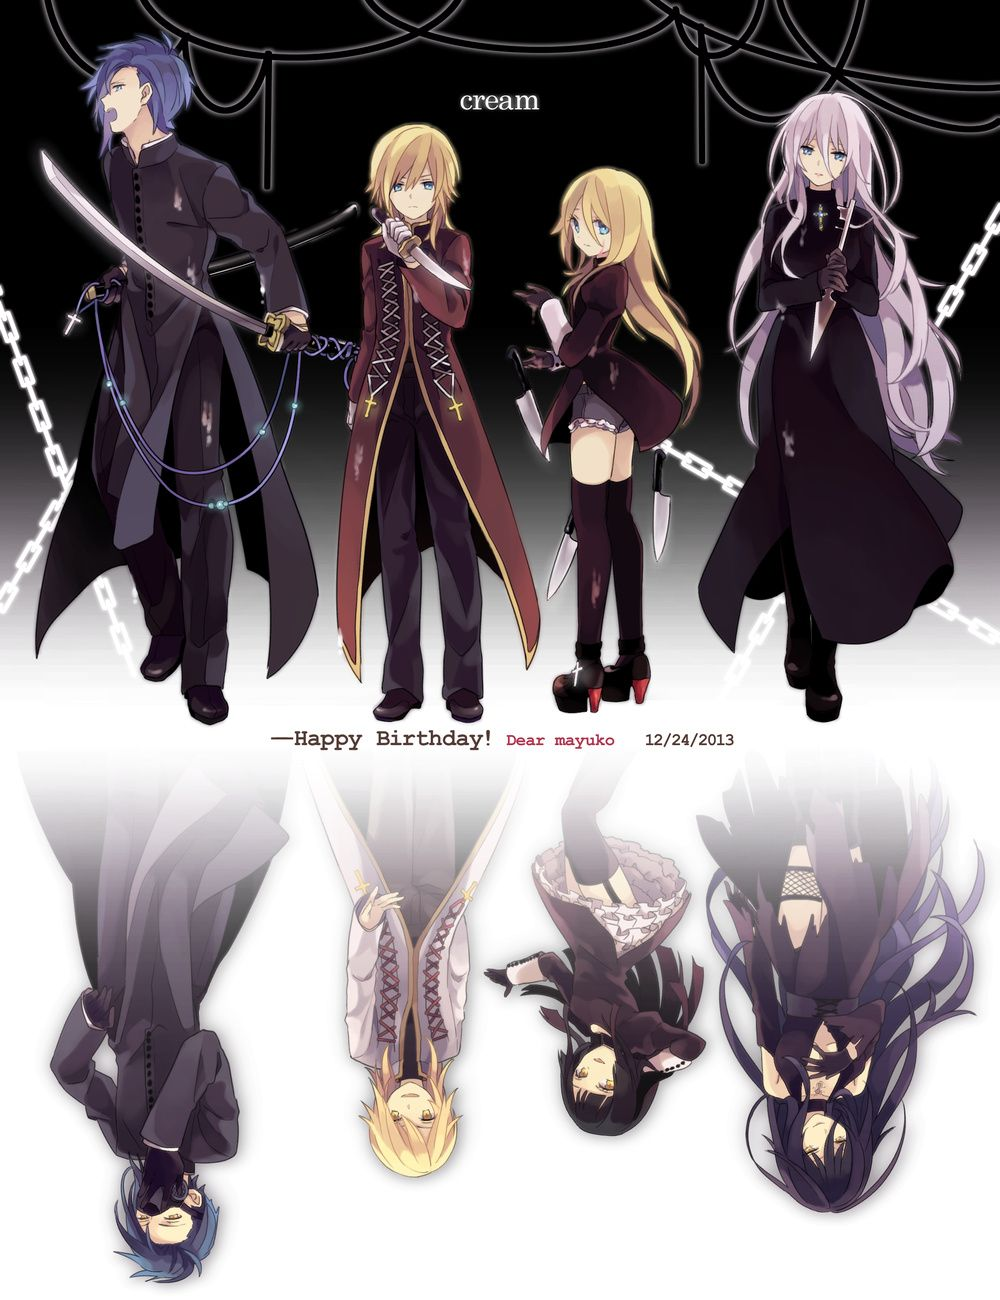 Vocaloid - KAITO, Kagamine Len and Rin, IA | Vocaloid | Pinterest ...